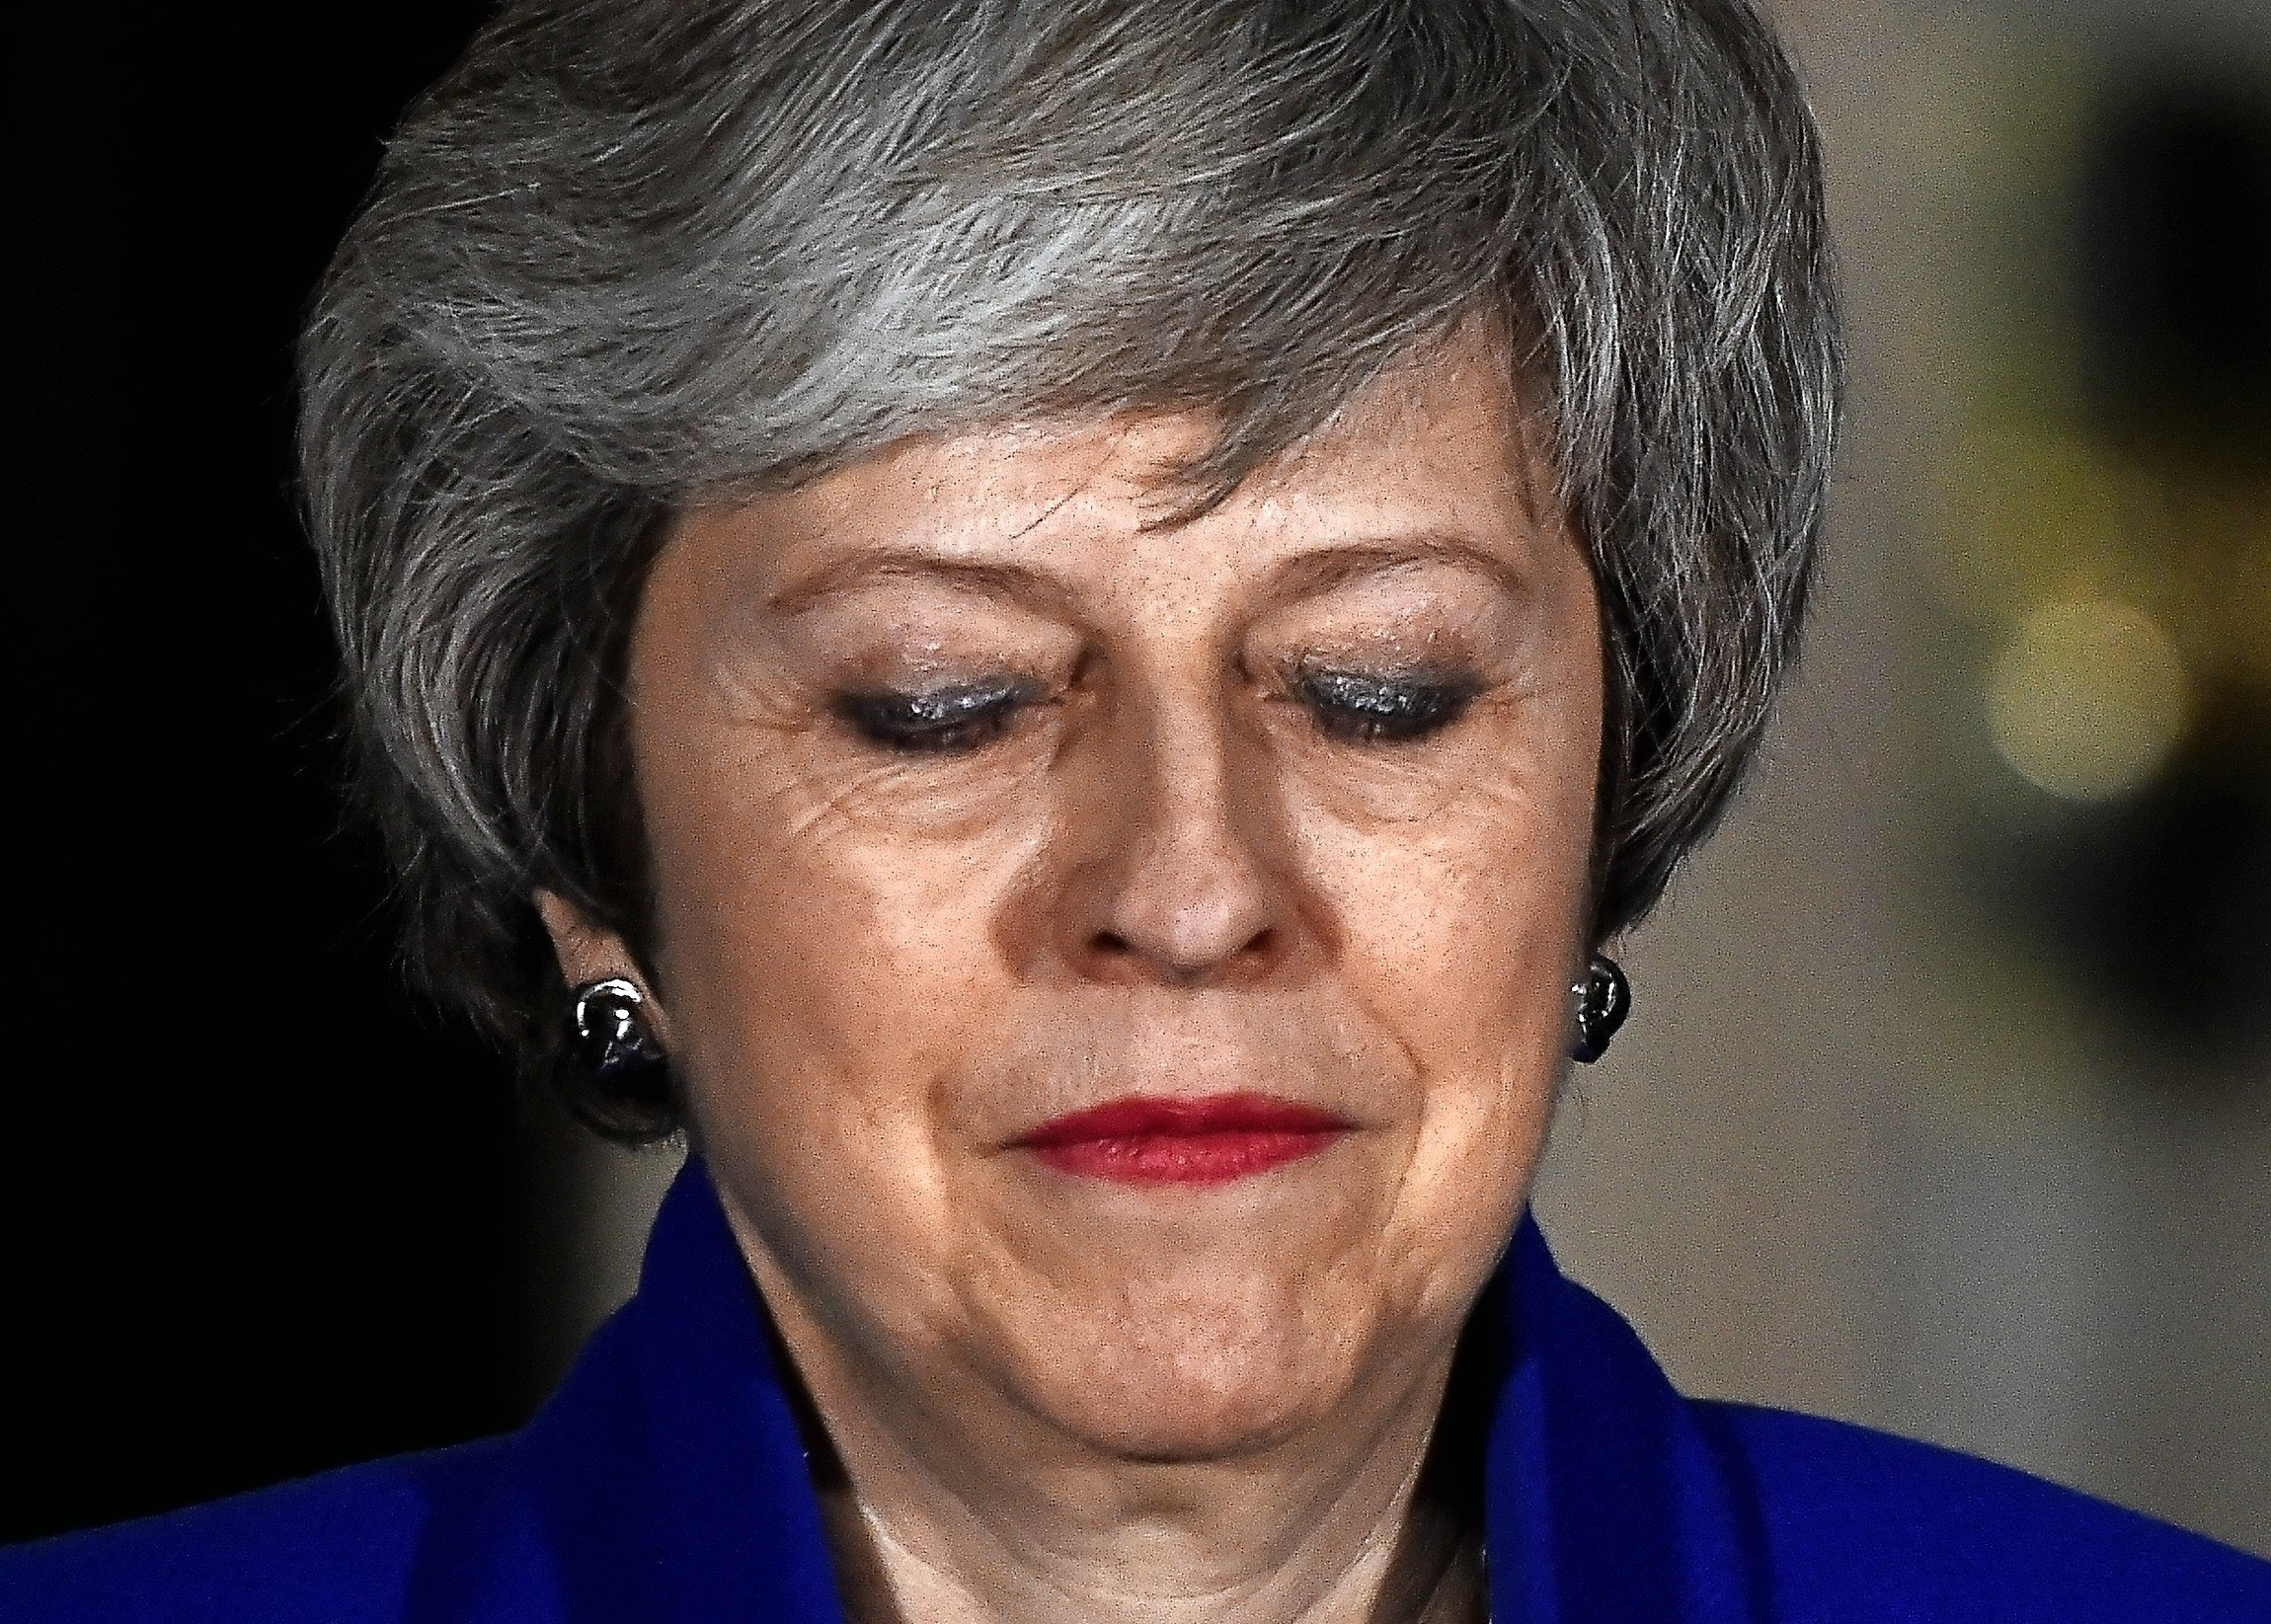 Britain's Prime Minister Theresa May makes a statement following winning a confidence vote, after Parliament rejected her Brexit deal, outside 10 Downing Street in London, Britain, January 16, 2019. REUTERS/Clodagh Kilcoyne - RC1AFD1983B0